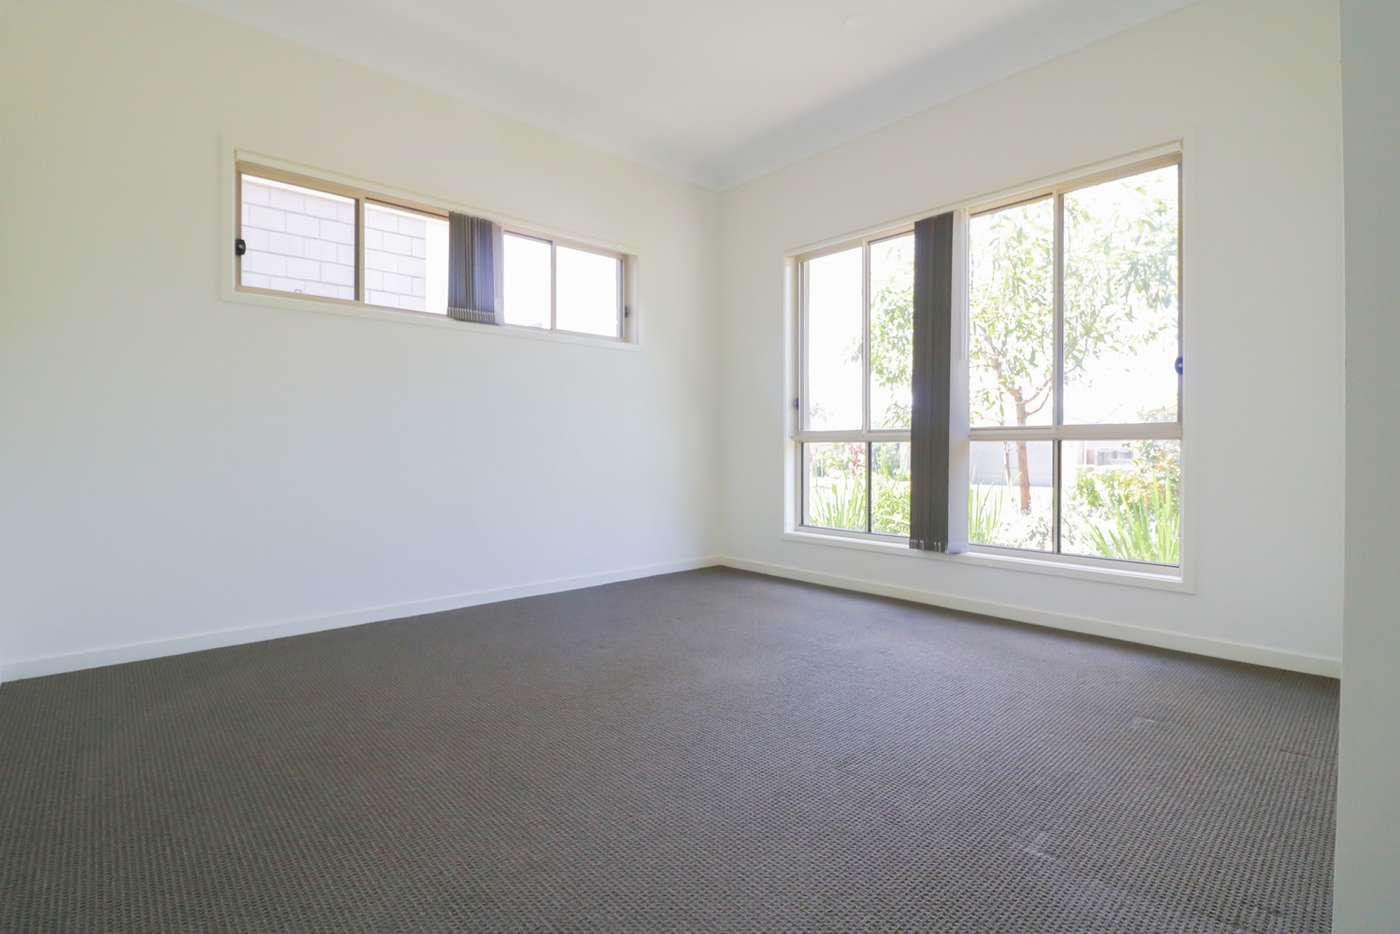 Fifth view of Homely house listing, 23 Maurie Pears Crescent, Pimpama QLD 4209